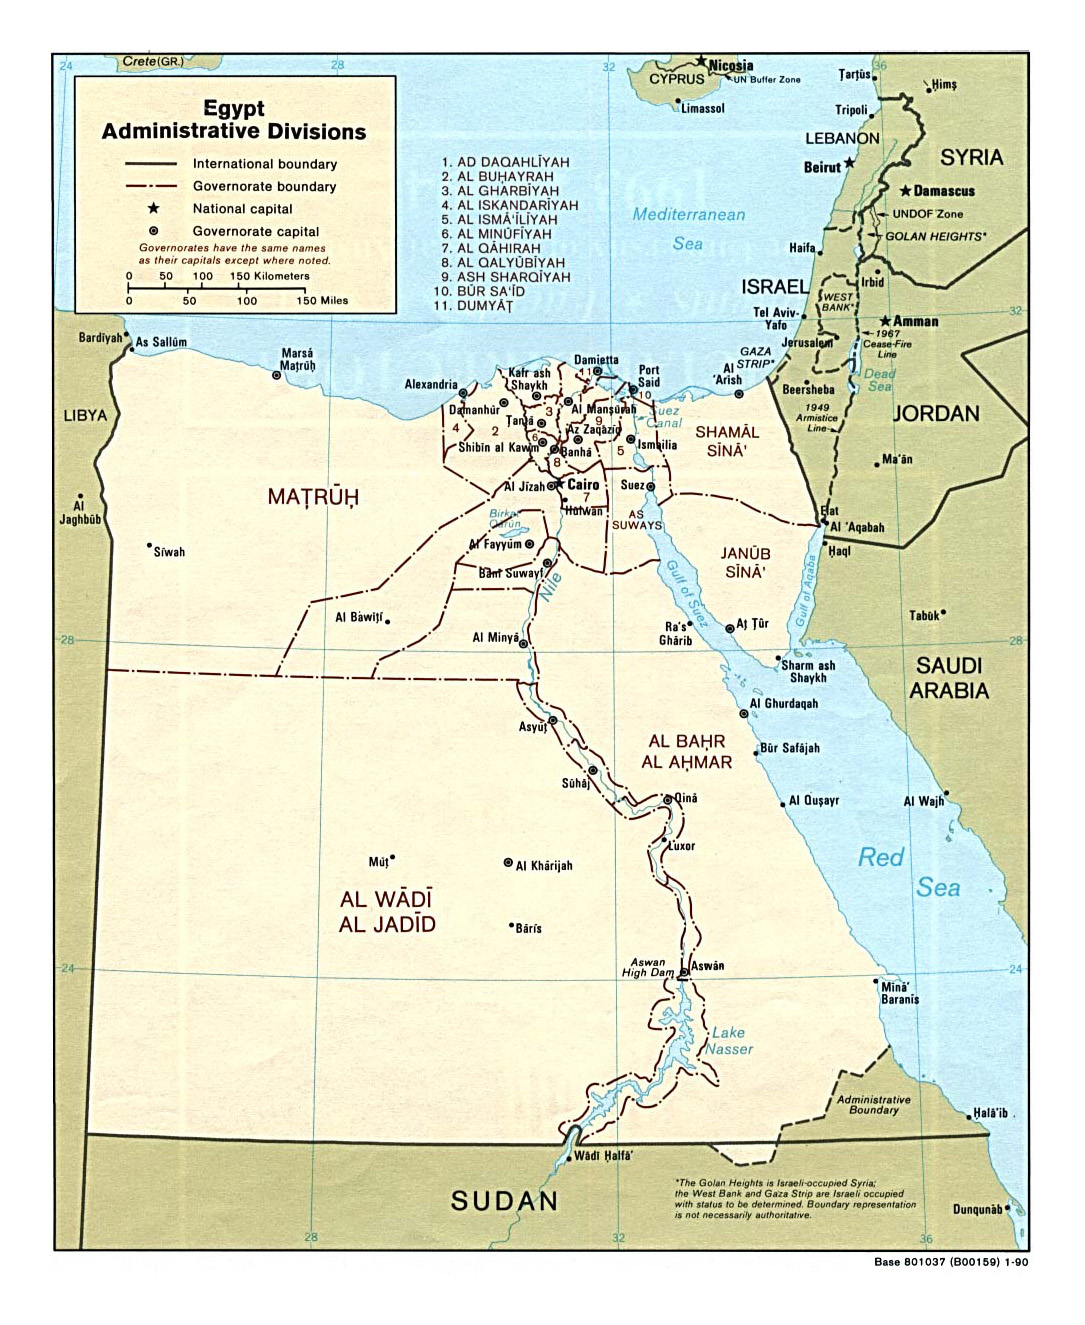 Detailed administrative divisions map of Egypt 1990 Egypt